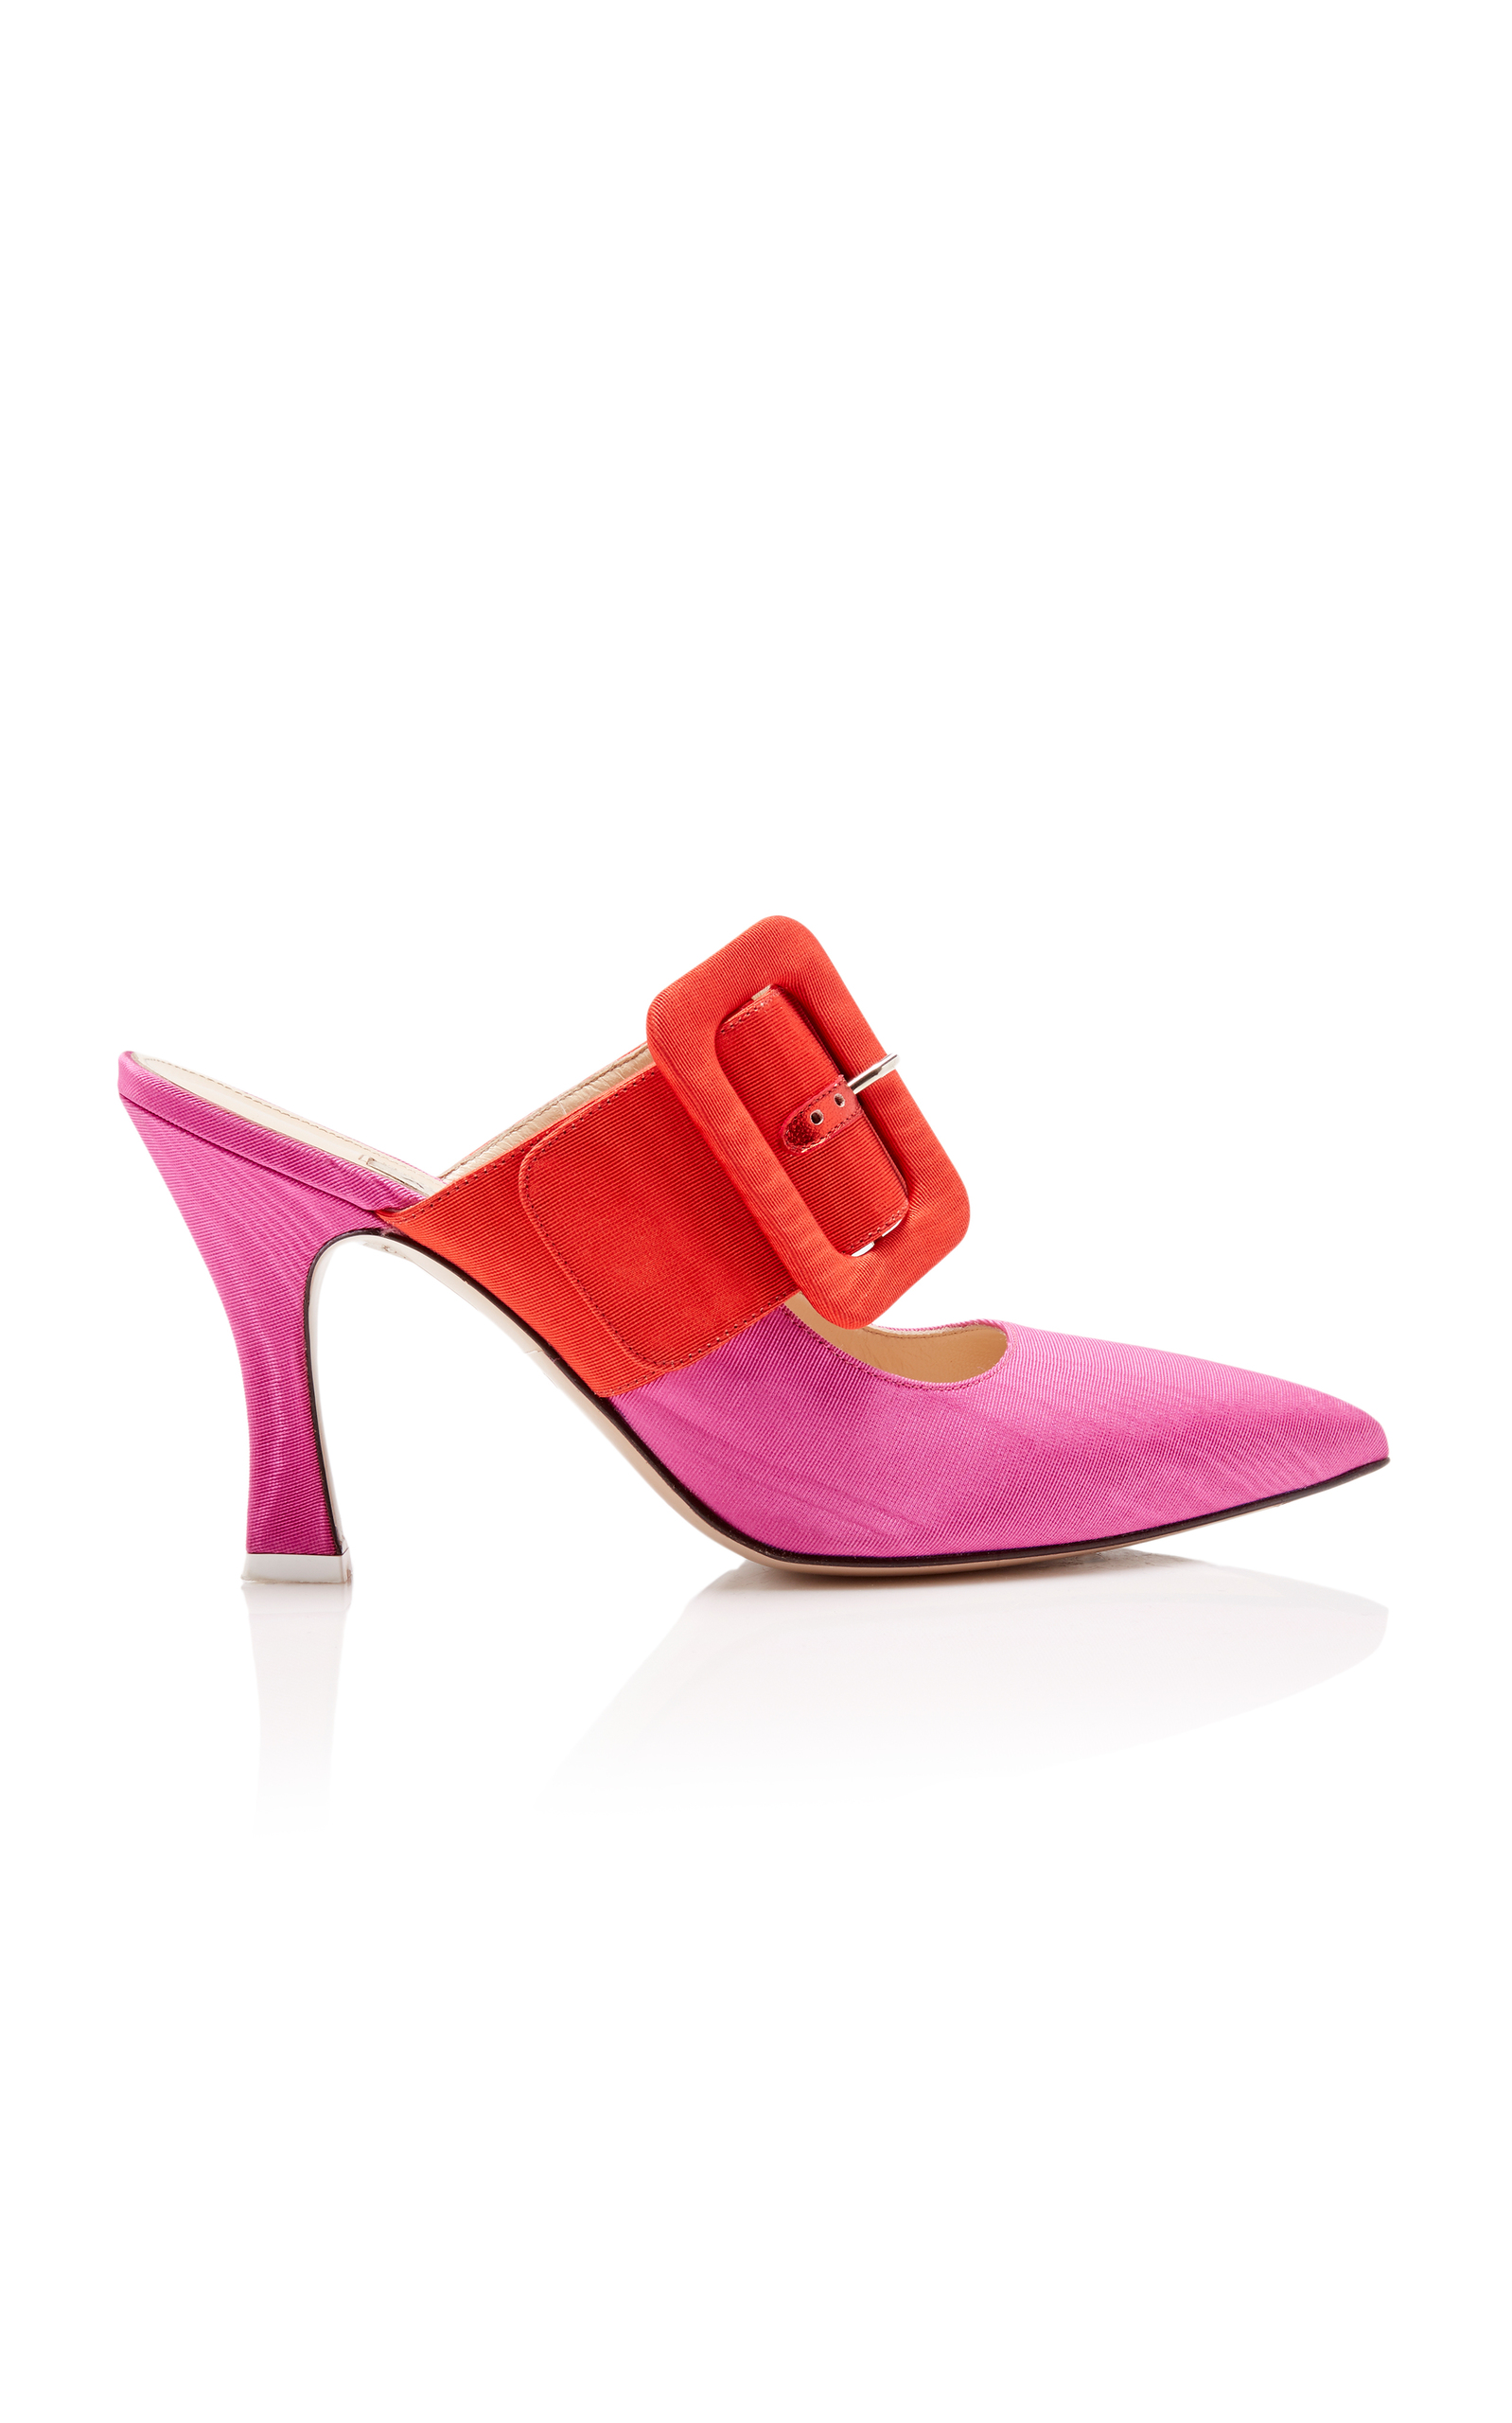 Bi Color Large Buckle Mule In Red And Fuchsia